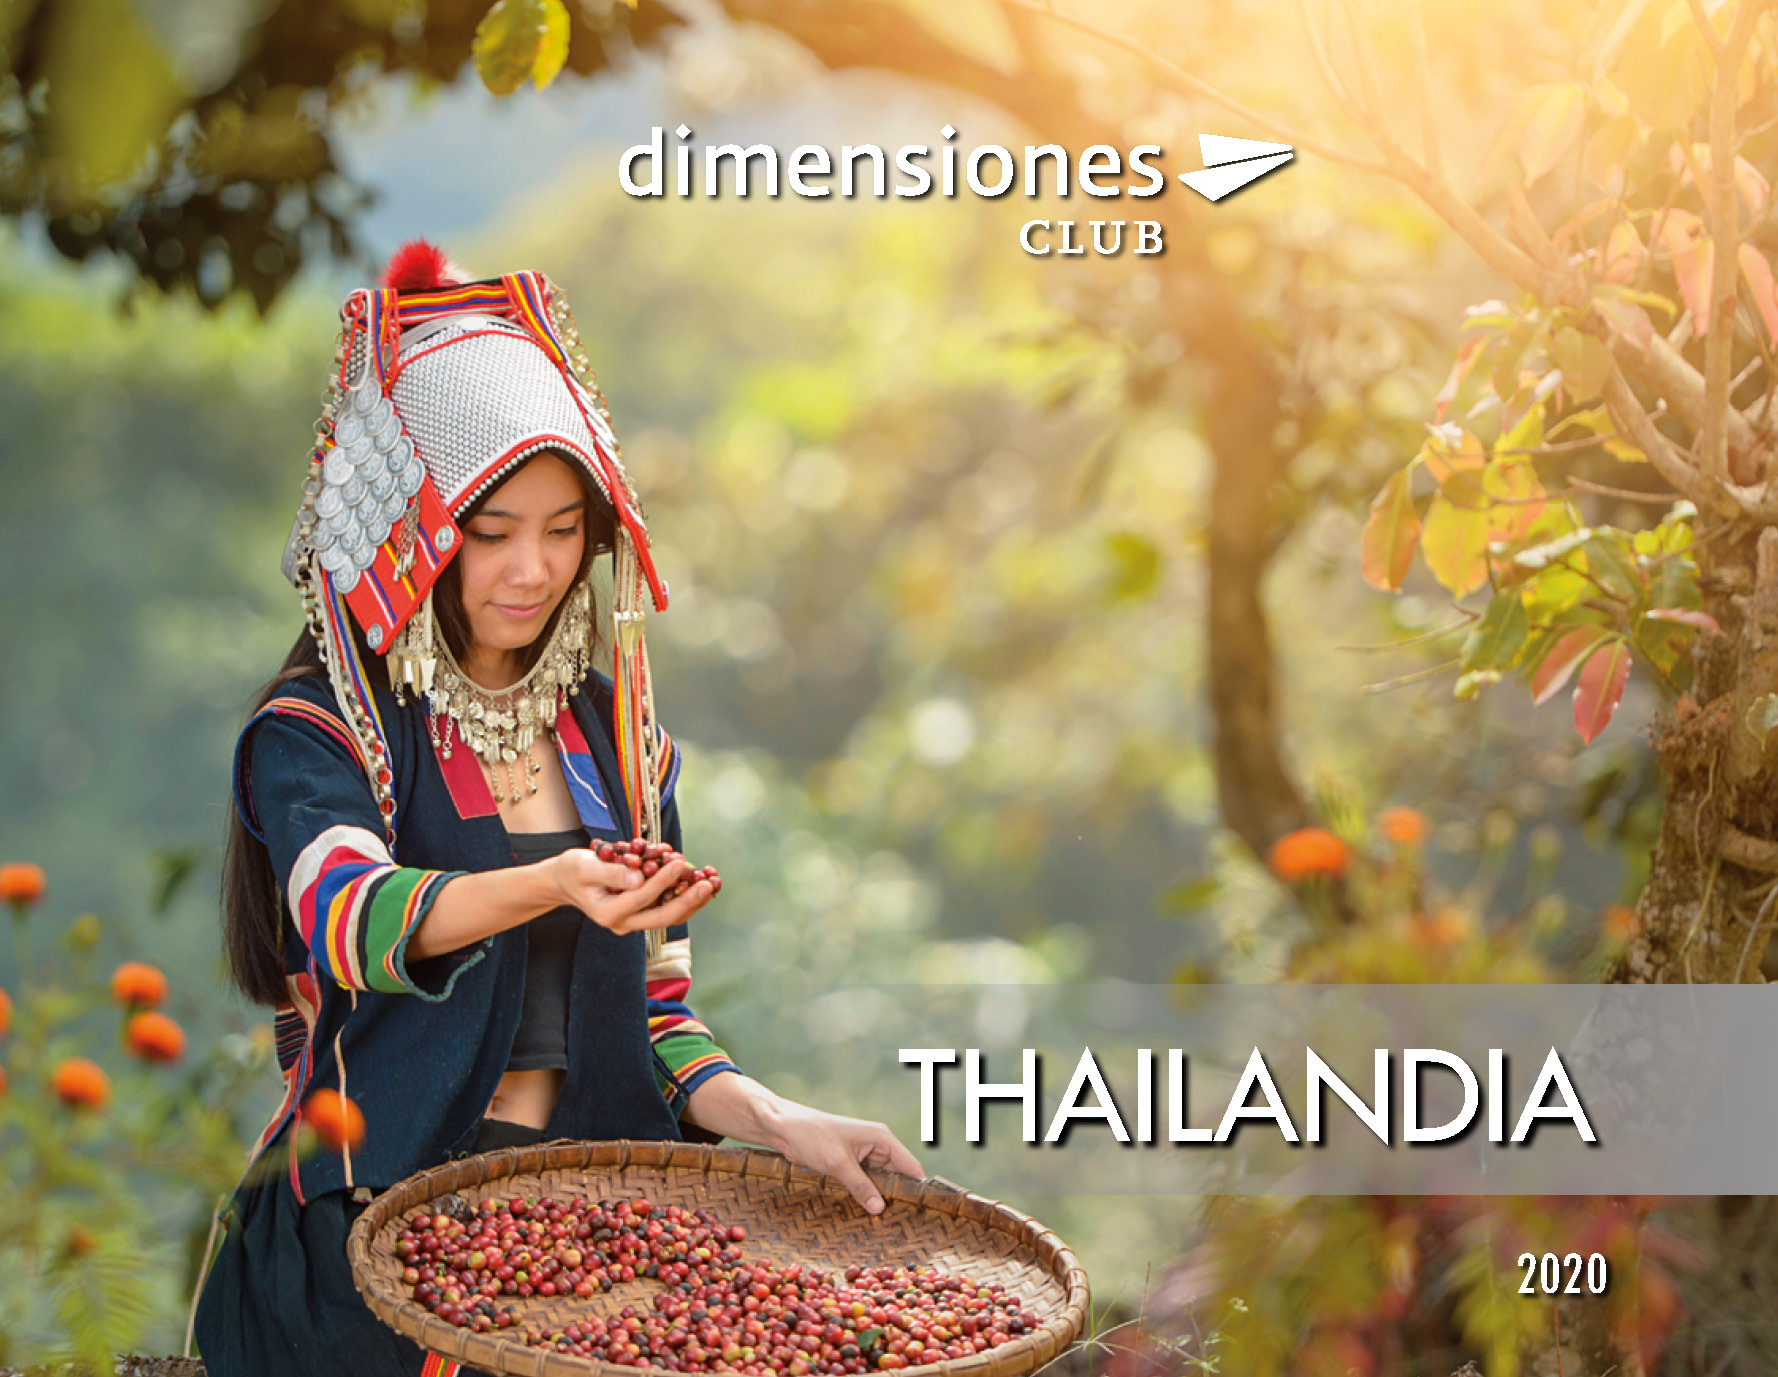 Catalogo Dimensiones Club Thailandia 2020